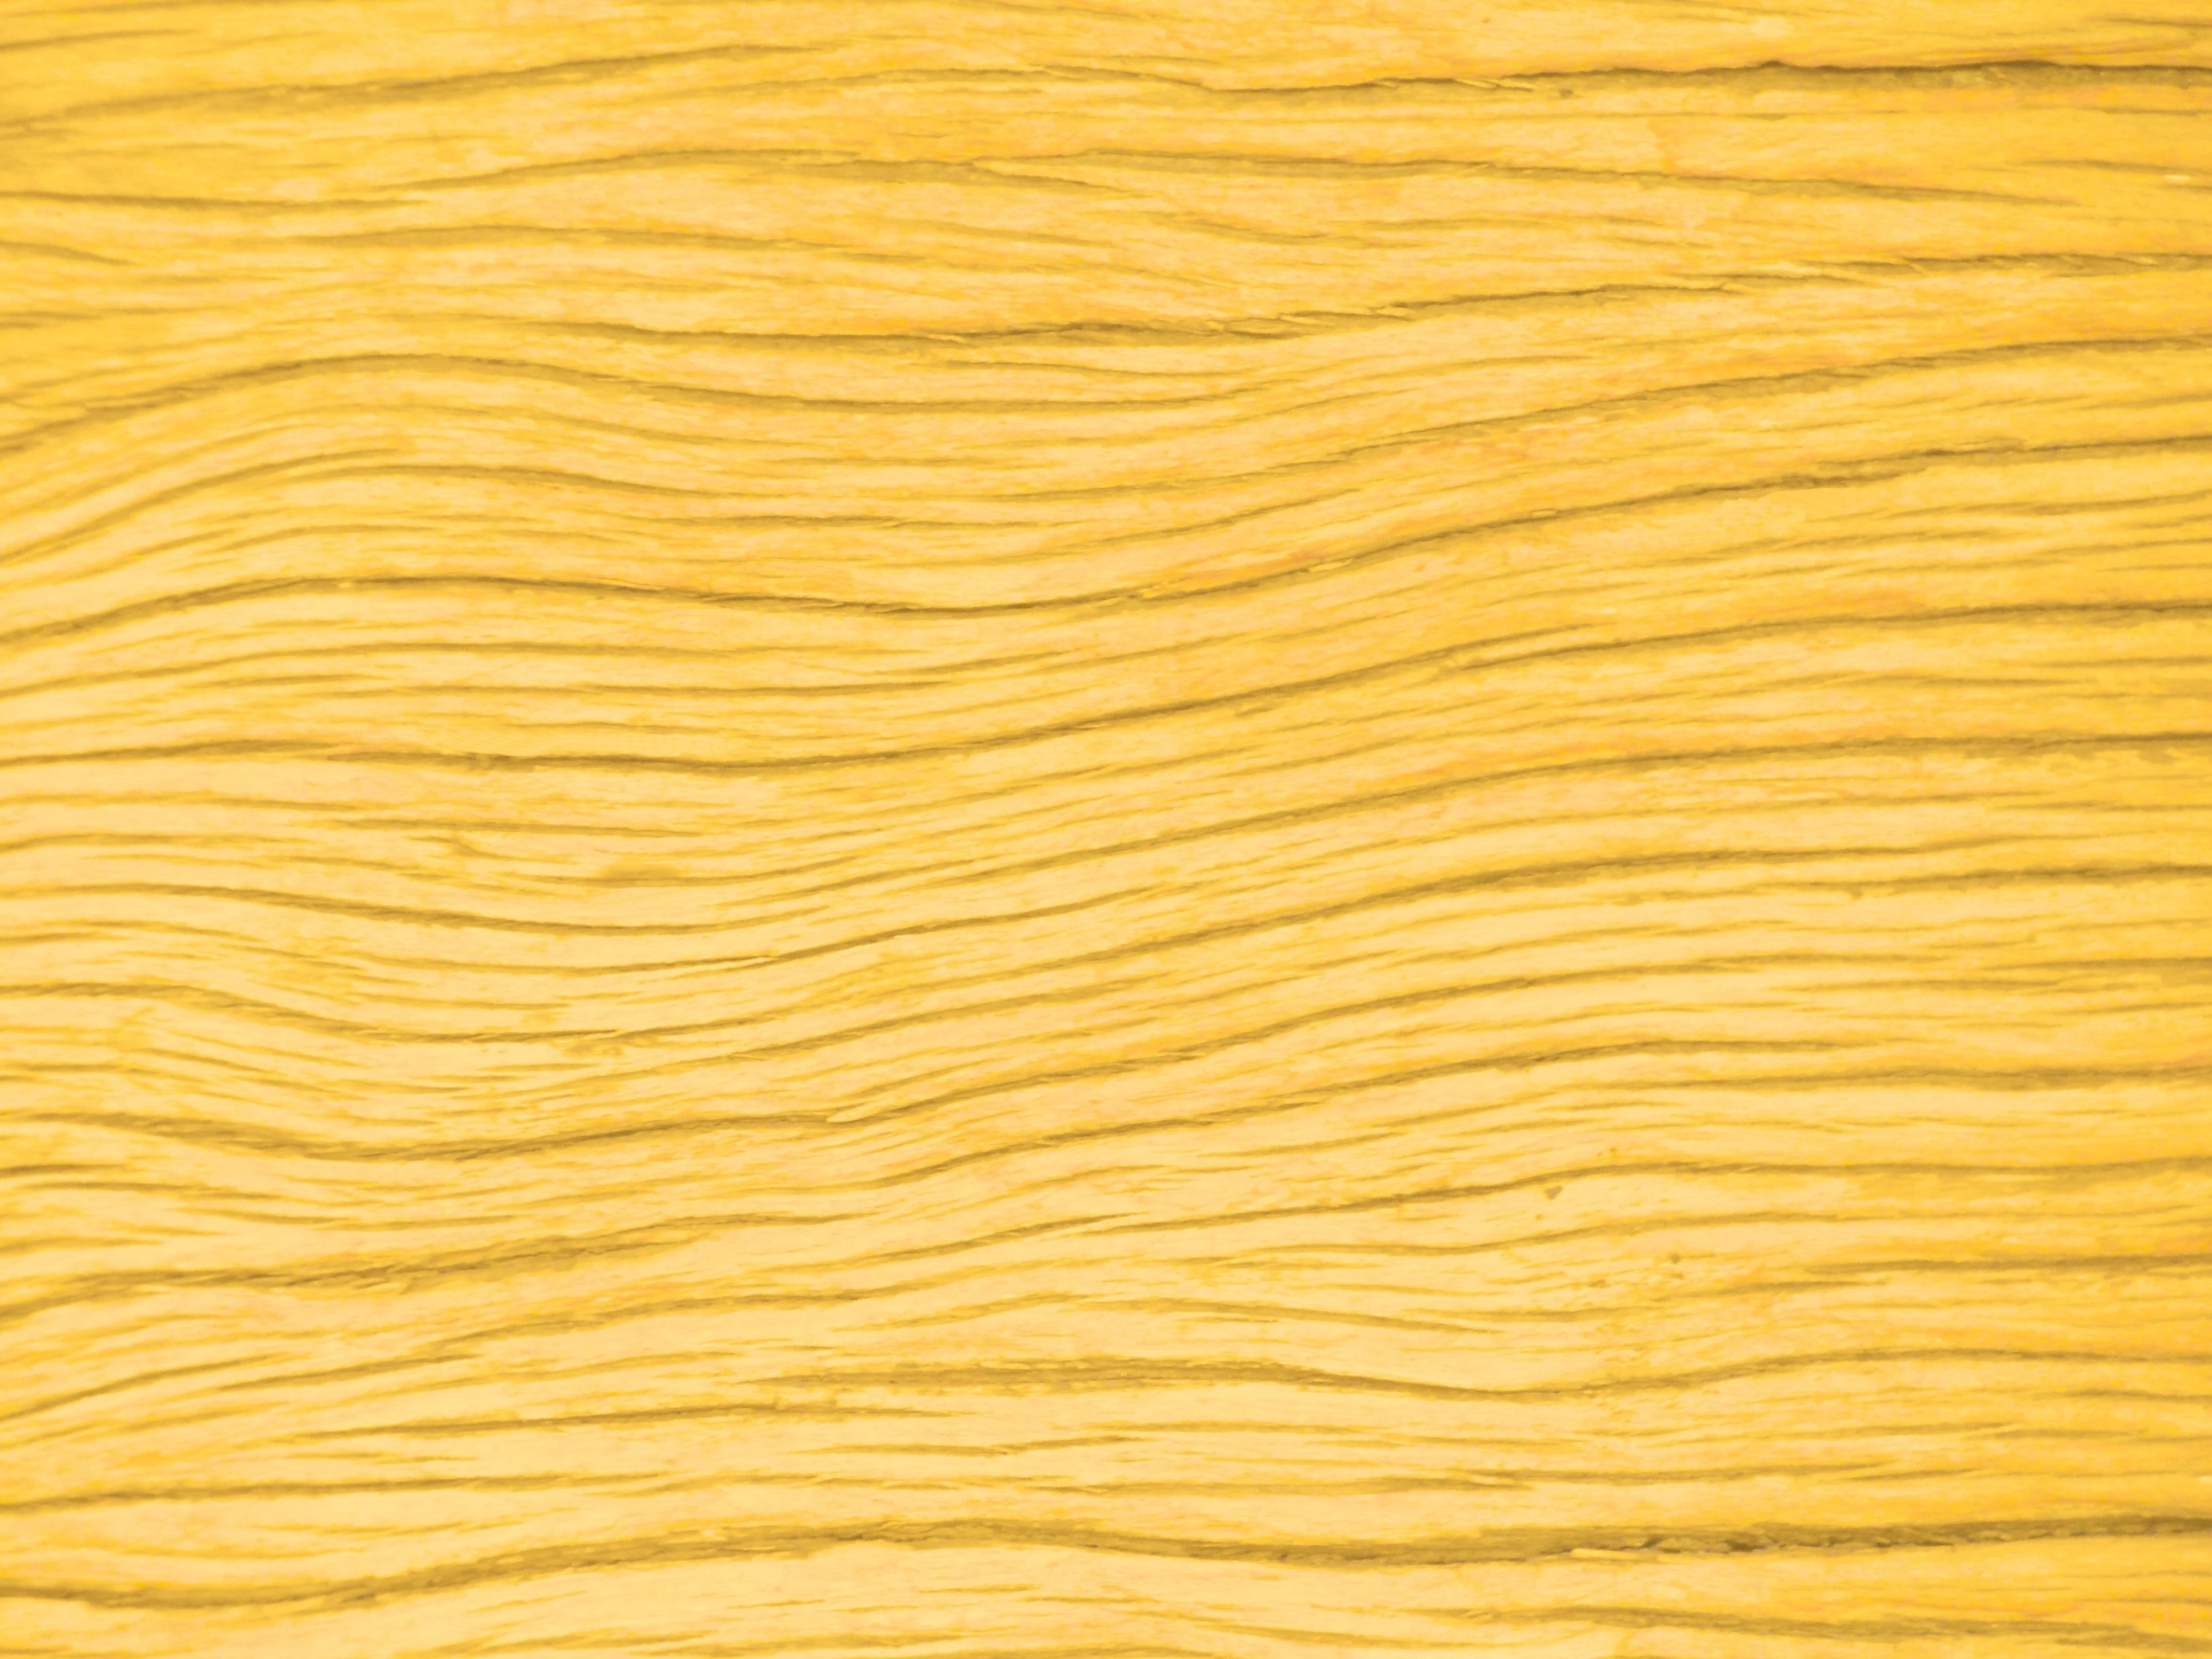 wood grain texture light light brown wood grain texture surface wood old hq photo free photo texture